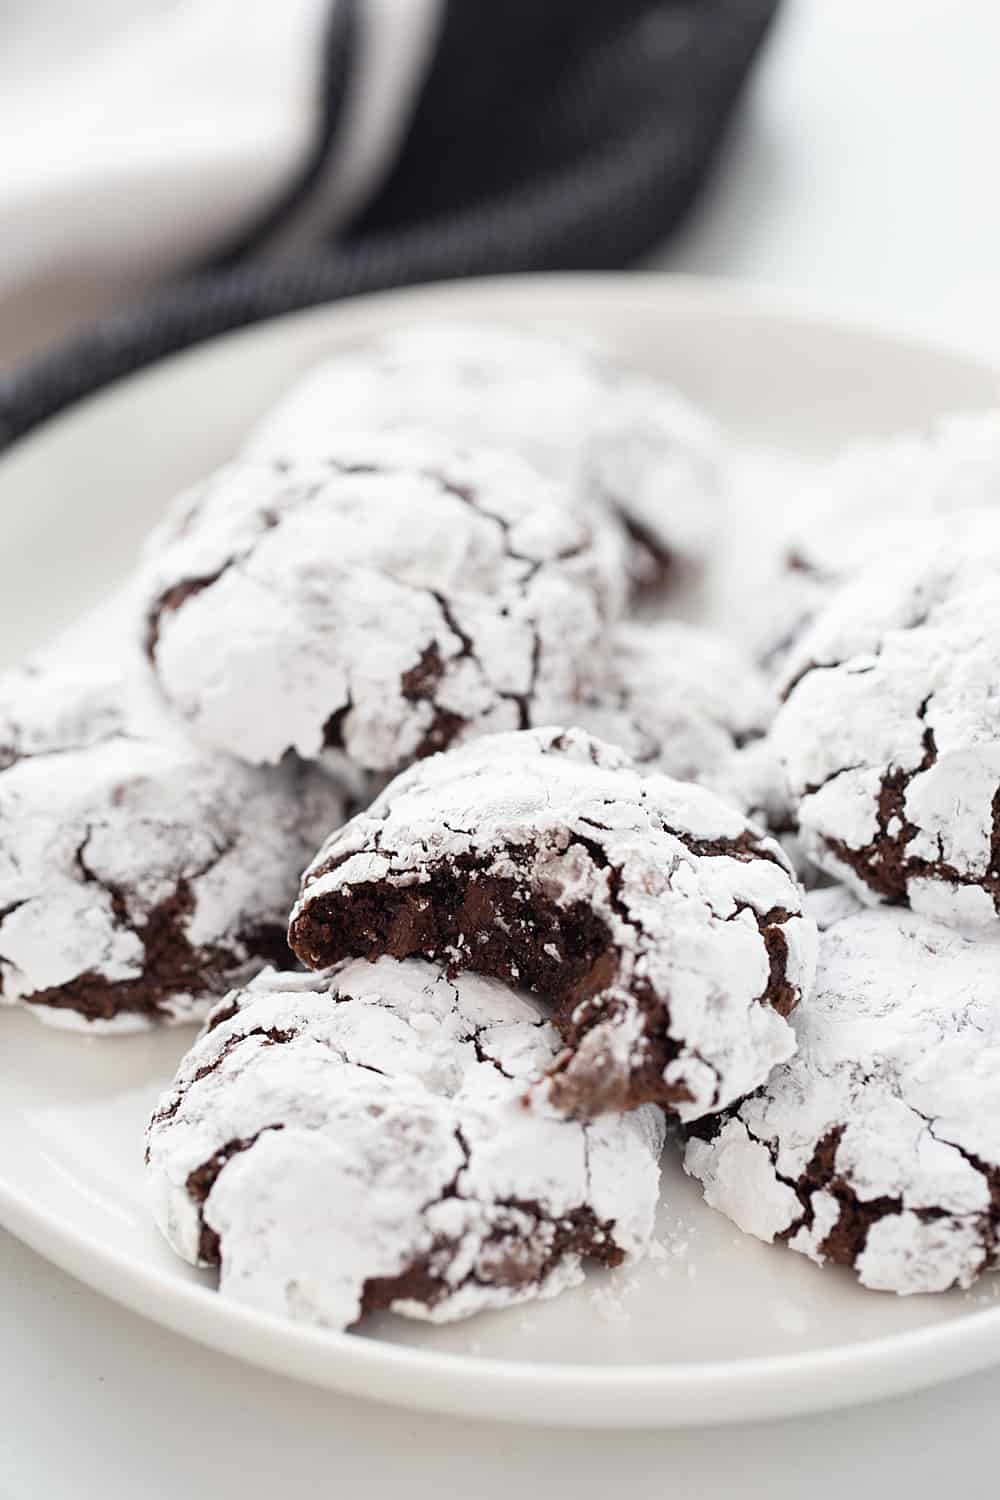 Double Chocolate Crinkle Cookies - Instant espresso powder + mini semisweet chocolate chips = next-level double chocolate crinkle cookies. One bite and you'll be hooked! #halfscratched #chocolate #cookies #crinklecookies #baking #cookierecipe #holidayrecipe #easyrecipe